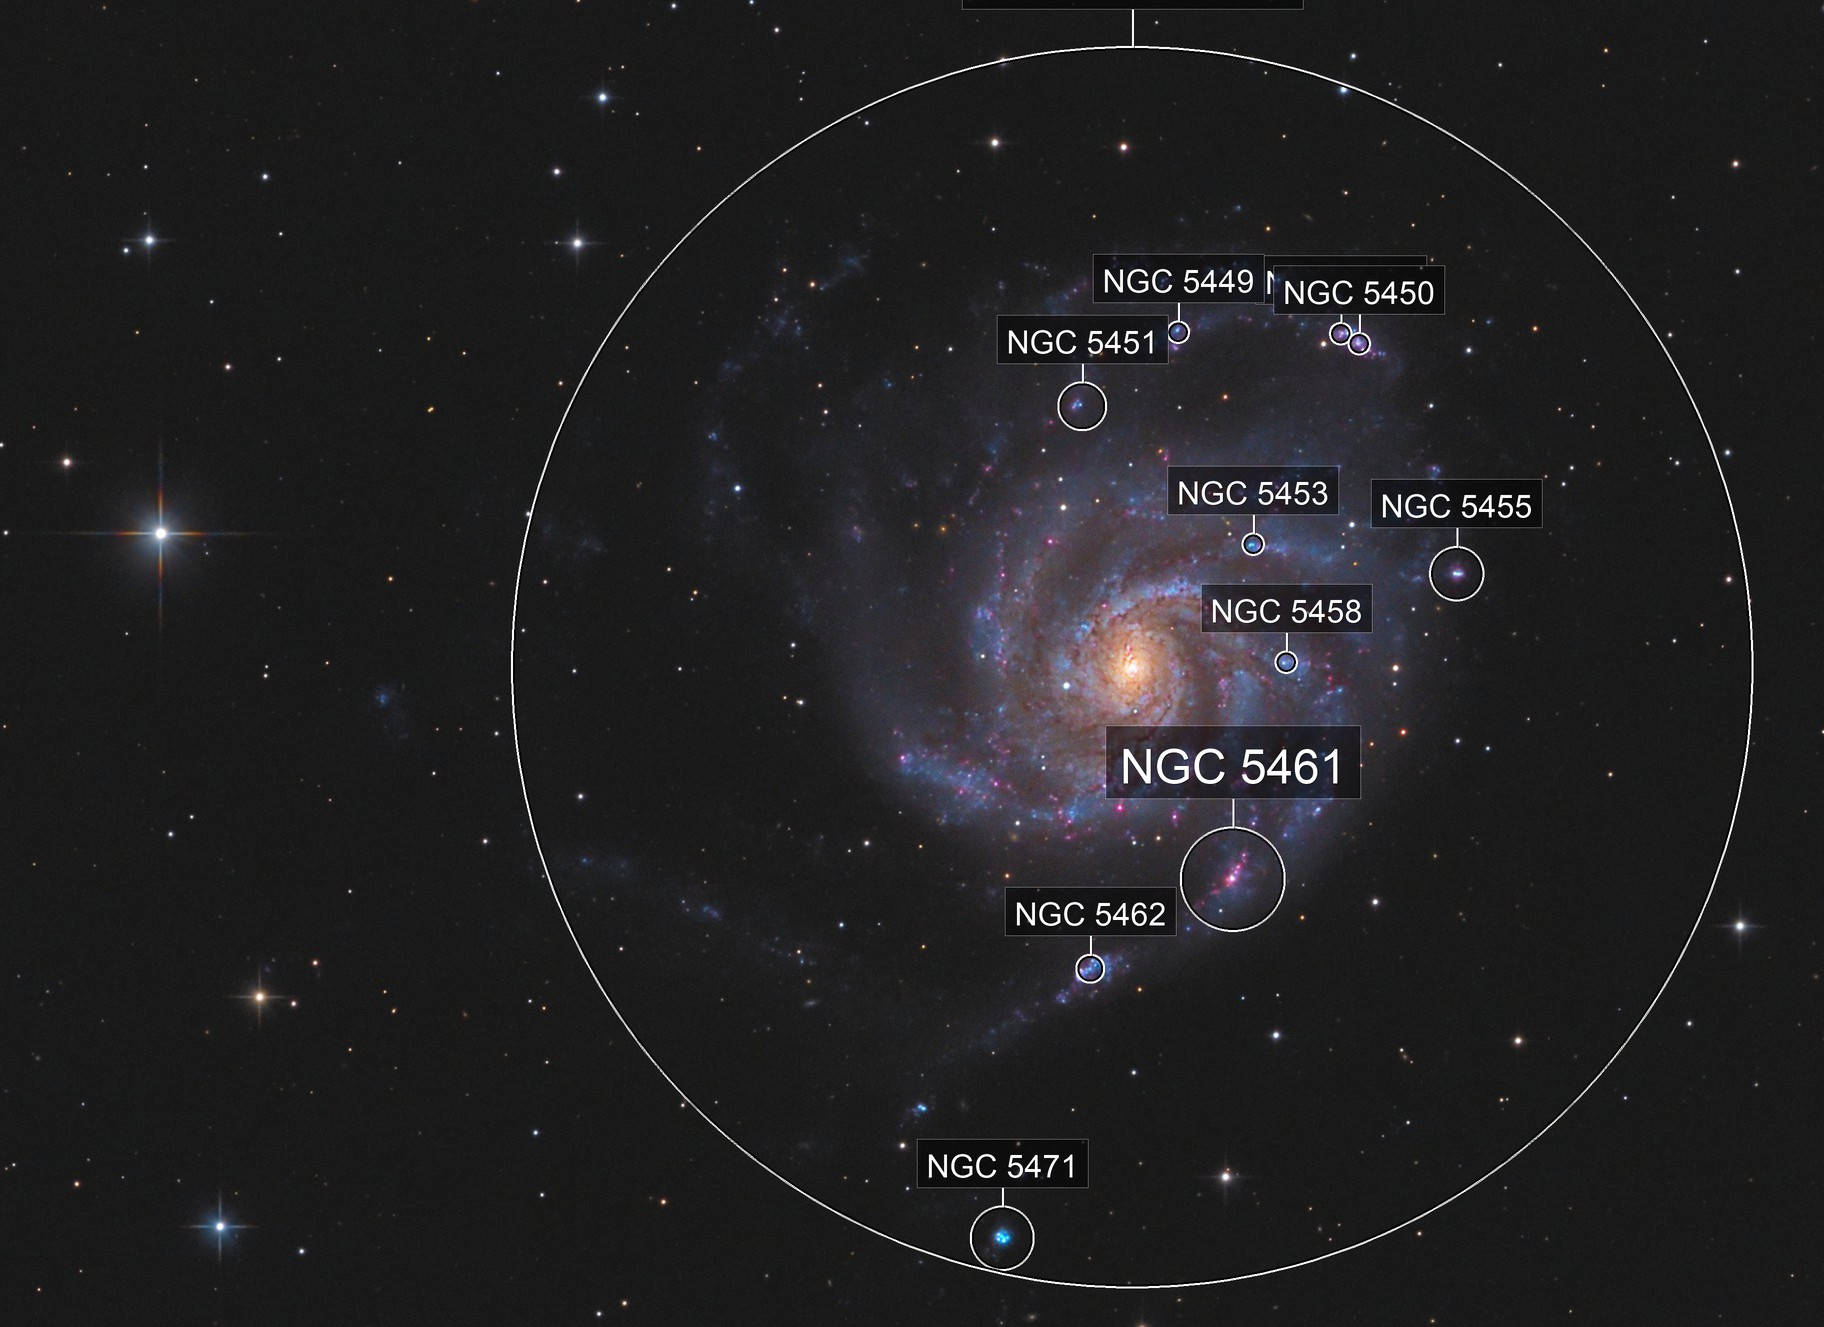 M101 Galaxy - Fine structures from light polluted skies